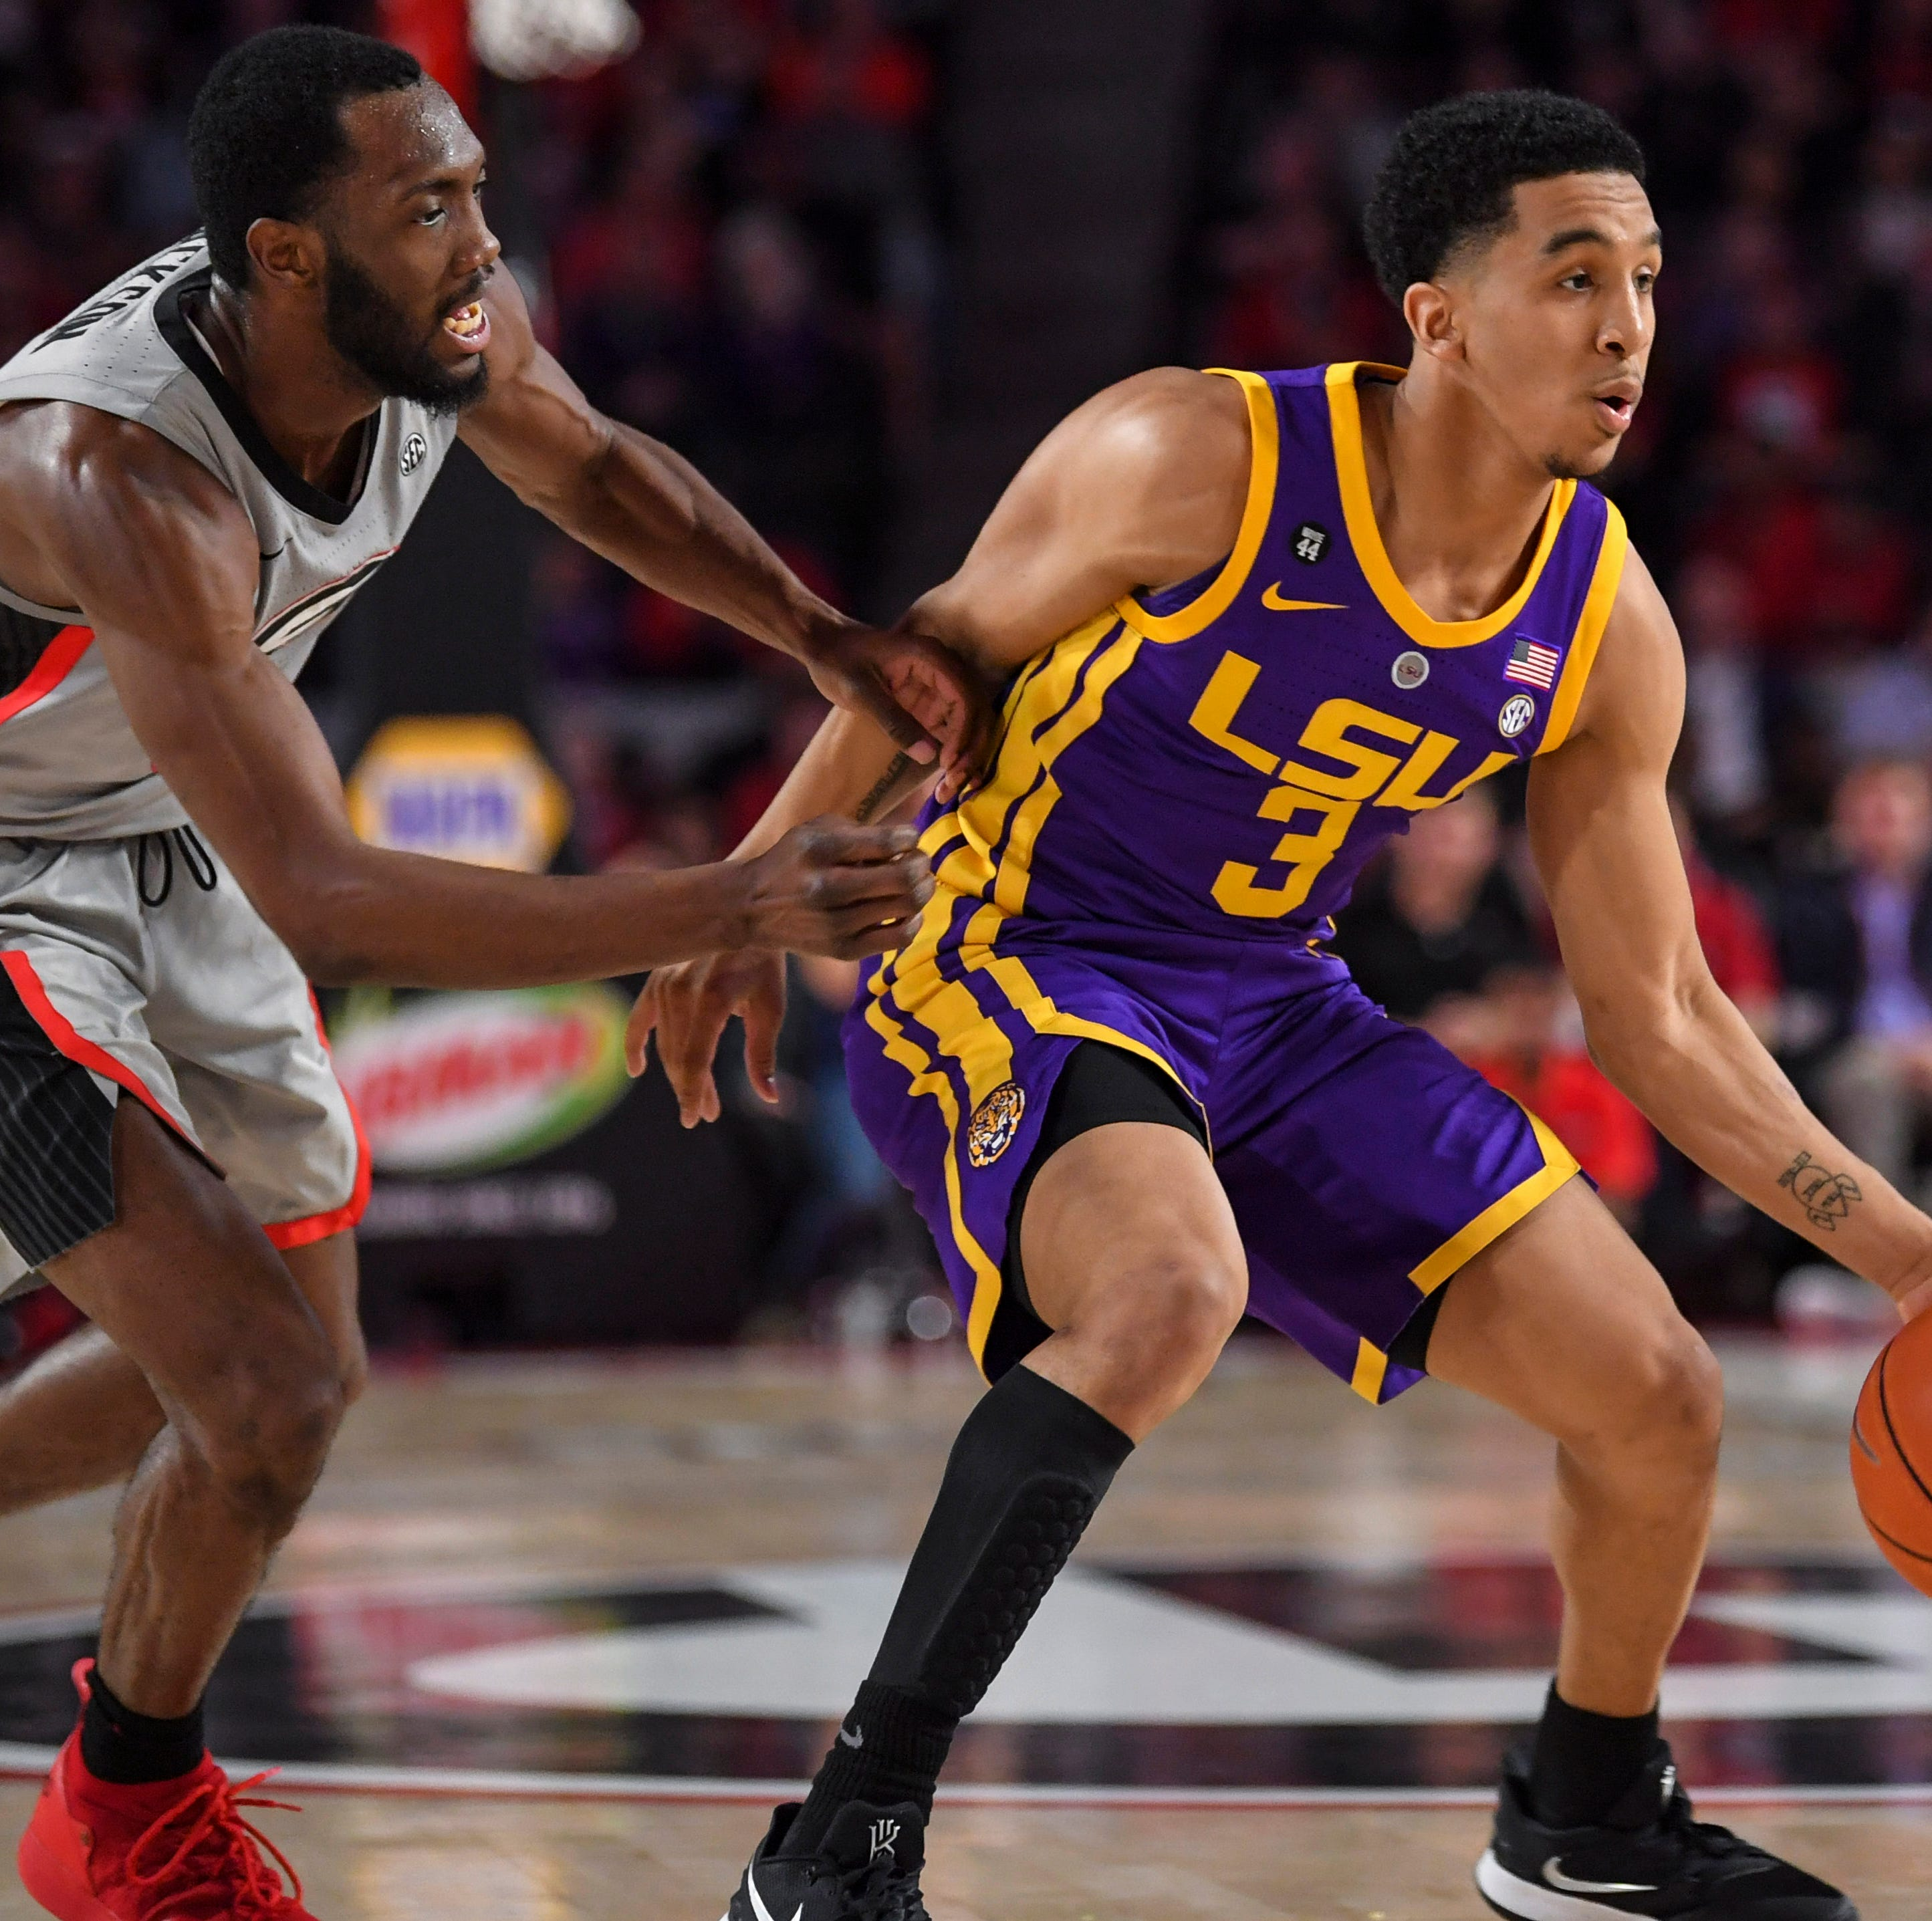 LSU hanging within 64-60 of No. 5 Tennessee despite not having star guard Tremont Waters